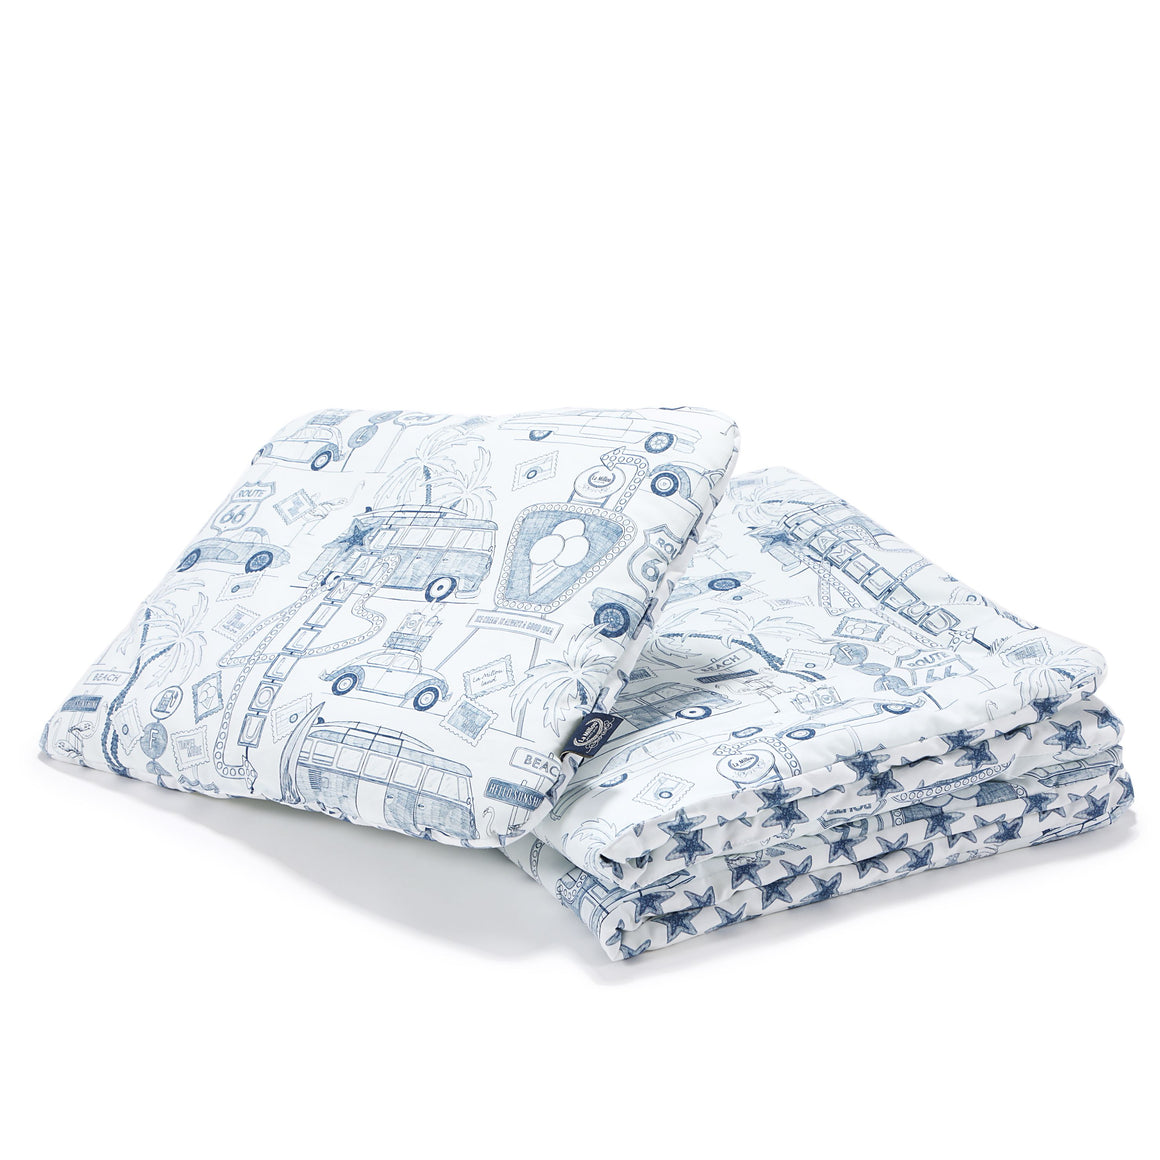 BEDDING WITH FILLING 2in1 (size M) - Route 66